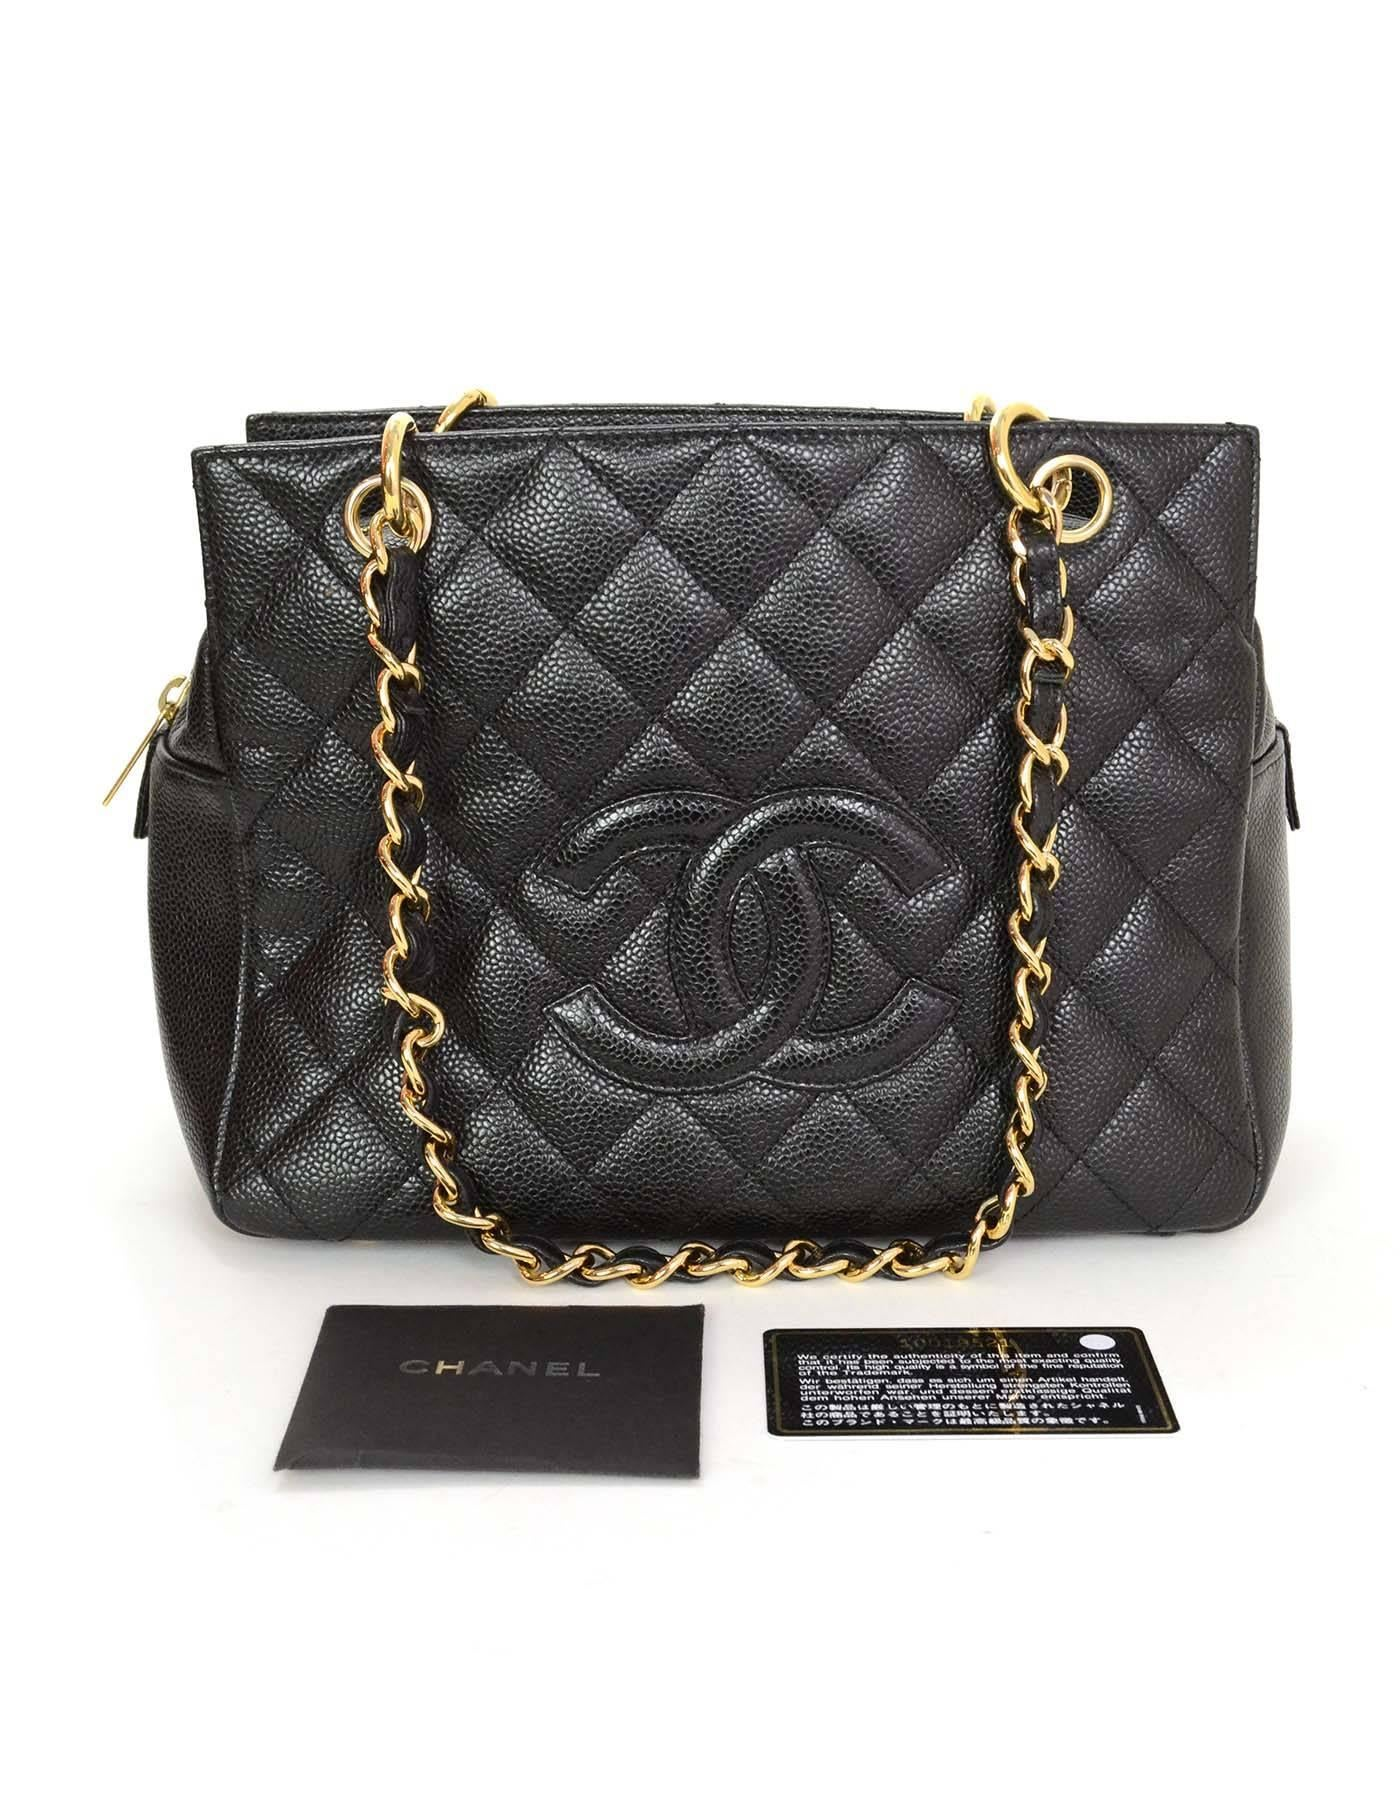 33ce1eb57bee Chanel Black Caviar Leather CC Petite Timeless Tote PTT Bag GHW For Sale at  1stdibs